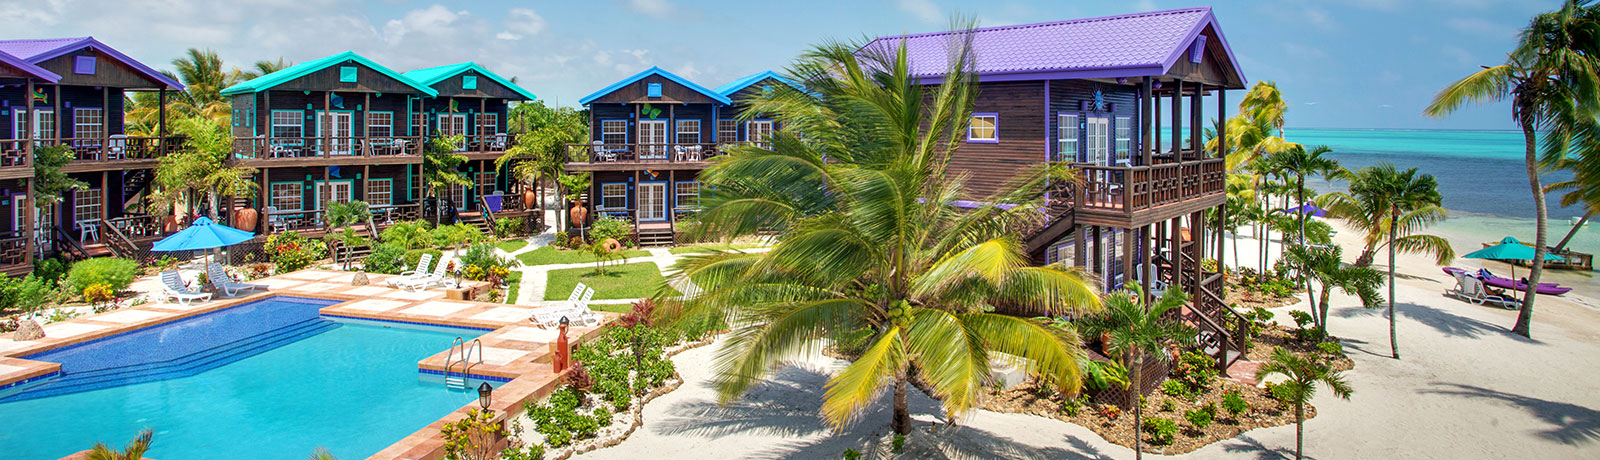 X'tan Ha Belize Beachfront Resort